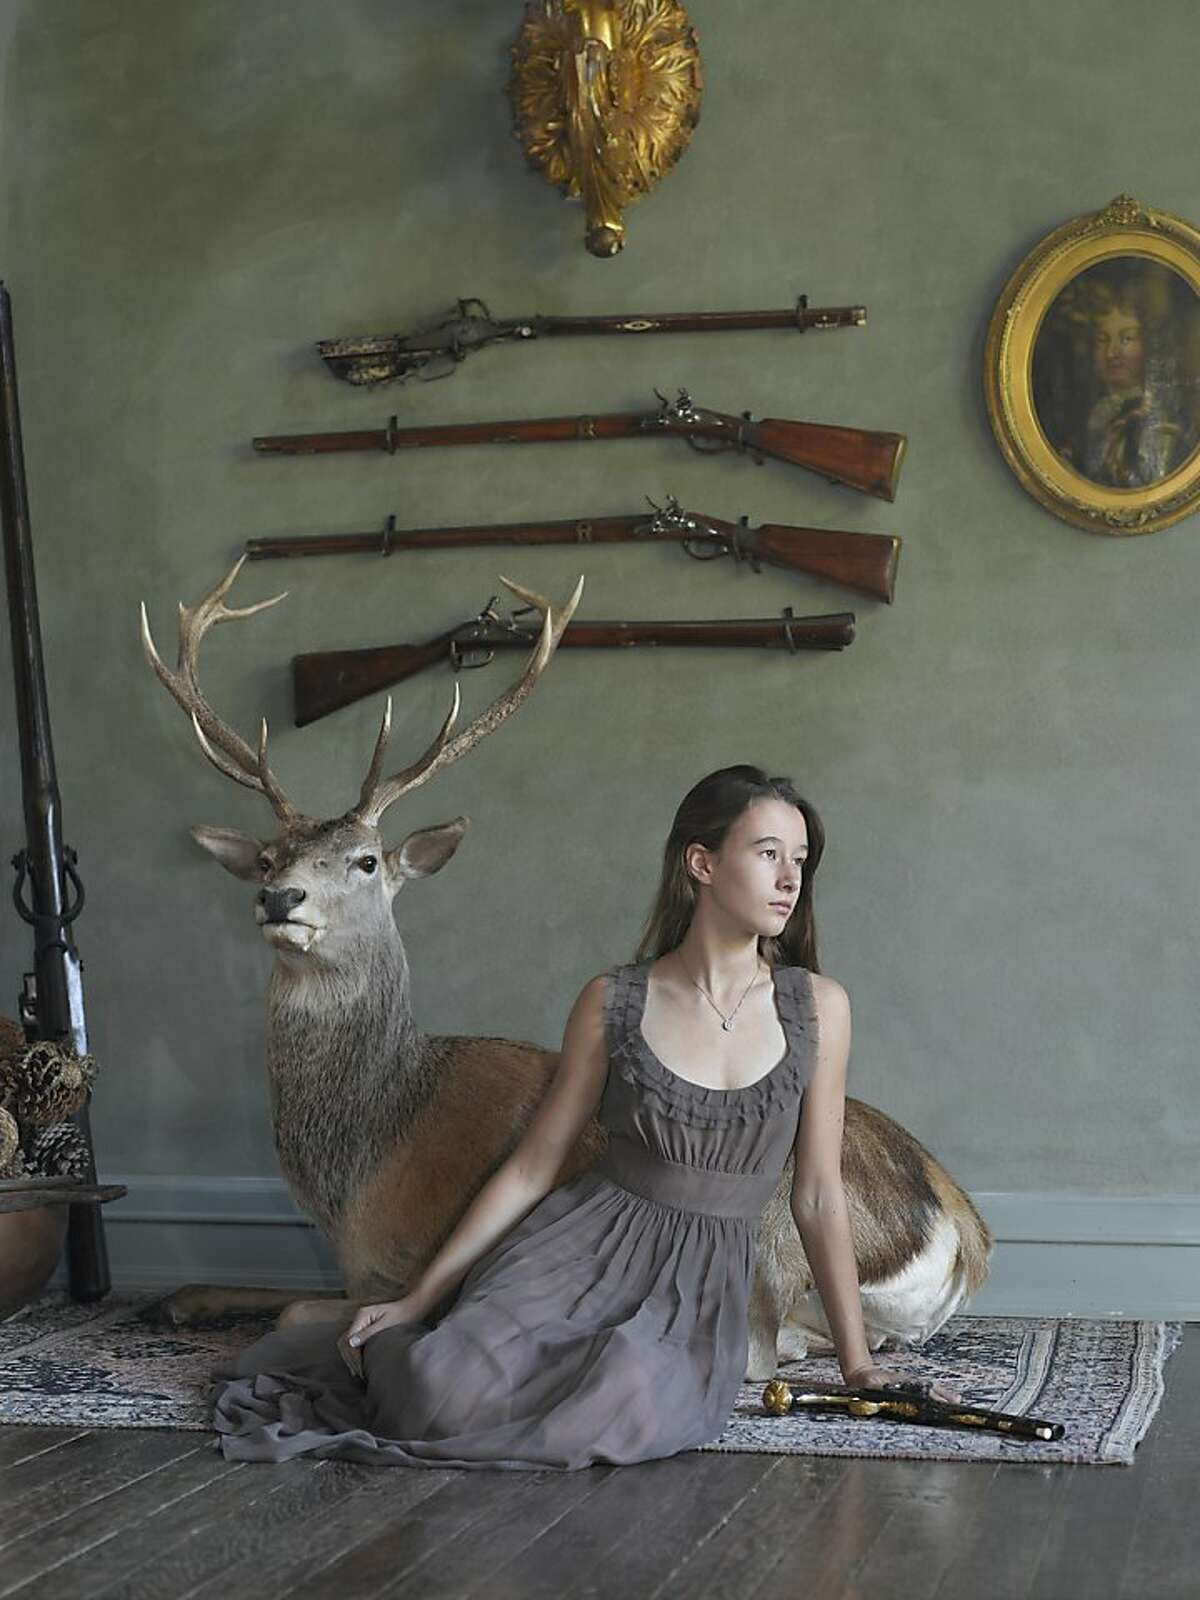 An image of Greta of Napa Valley, Calif., with her English Forsyth sytem scent bottle pistol, ca. 1820 by Lindsay McCrum appears in her book,